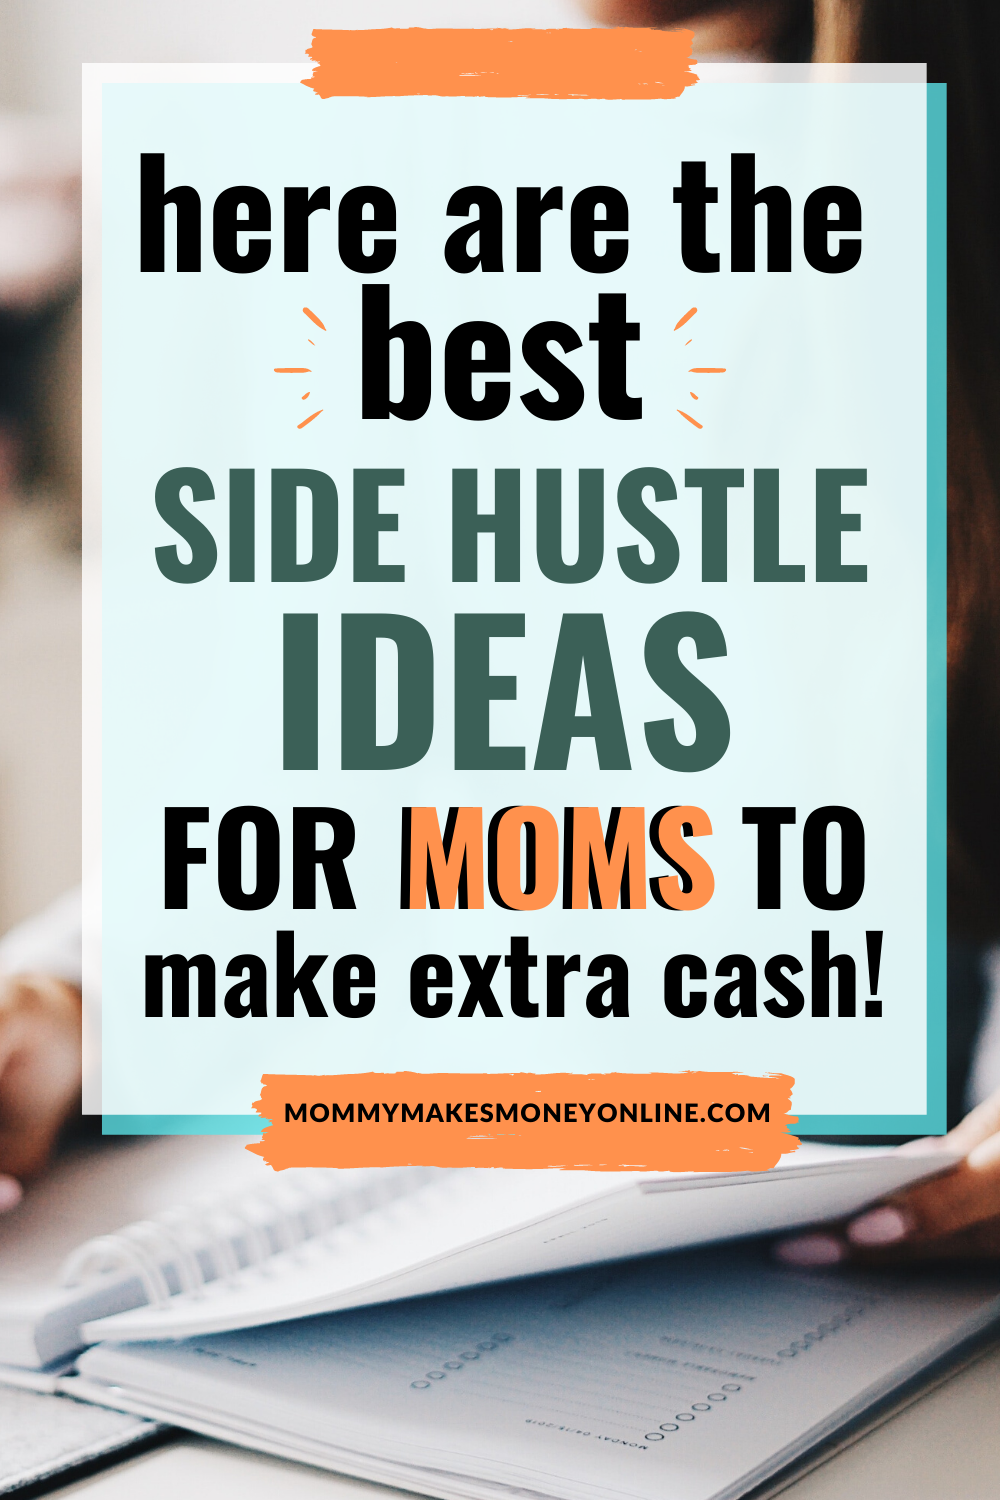 Making money online has never been easier and with so many different ways you are sure to find something! Side hustles are a great way to make an extra $1,000 or more per month! Here are over 10 of the best side hustle ideas for moms, college students, or anyone looking to start a legit side hustle! #sidehustle #sidehustleideas #makemoneyonline #money